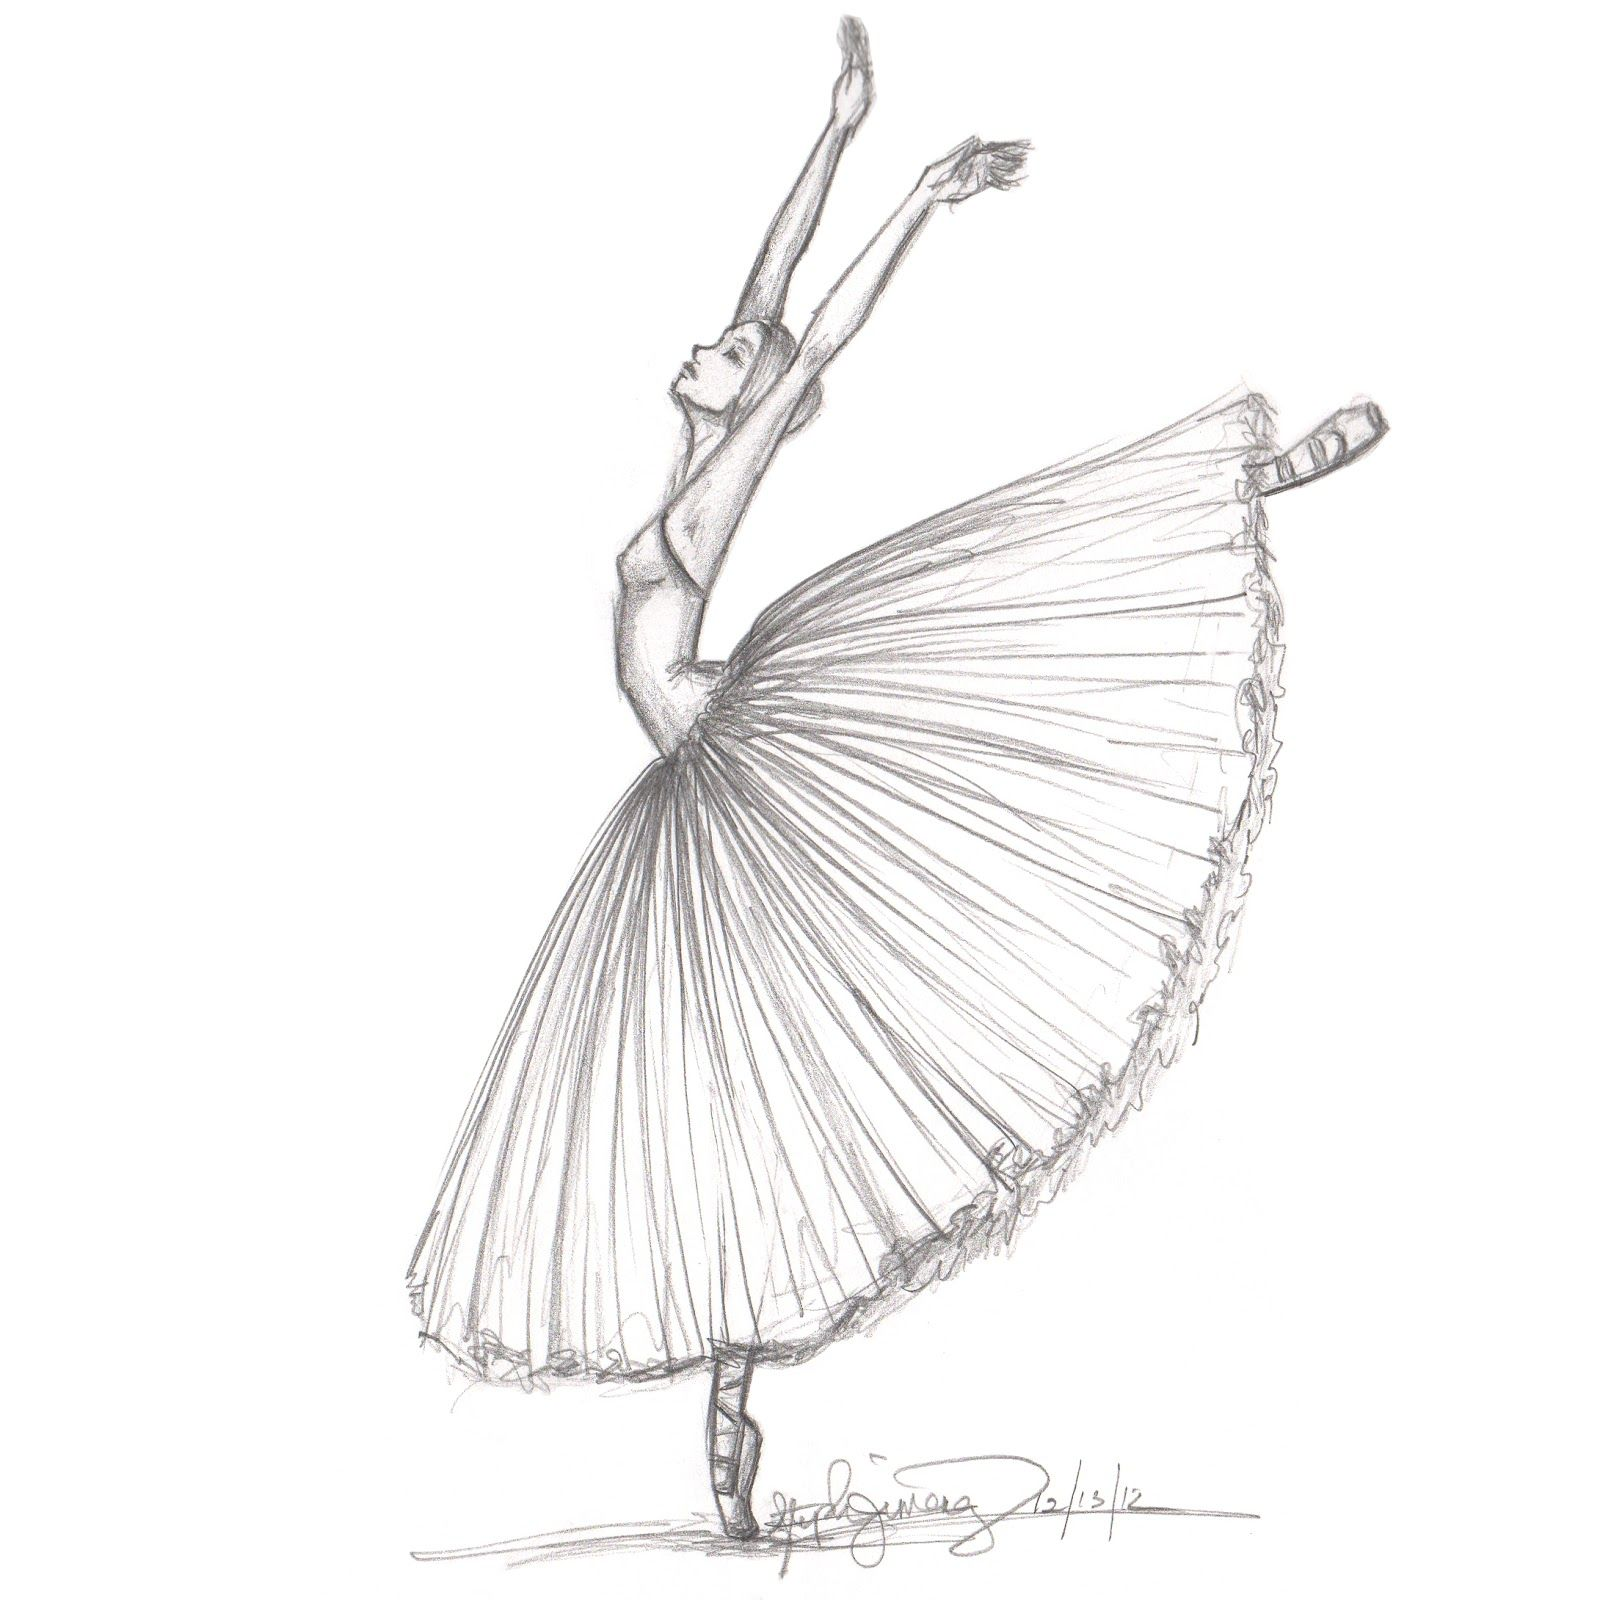 Fashion Illustration Inspired By The Ballet Giselle By